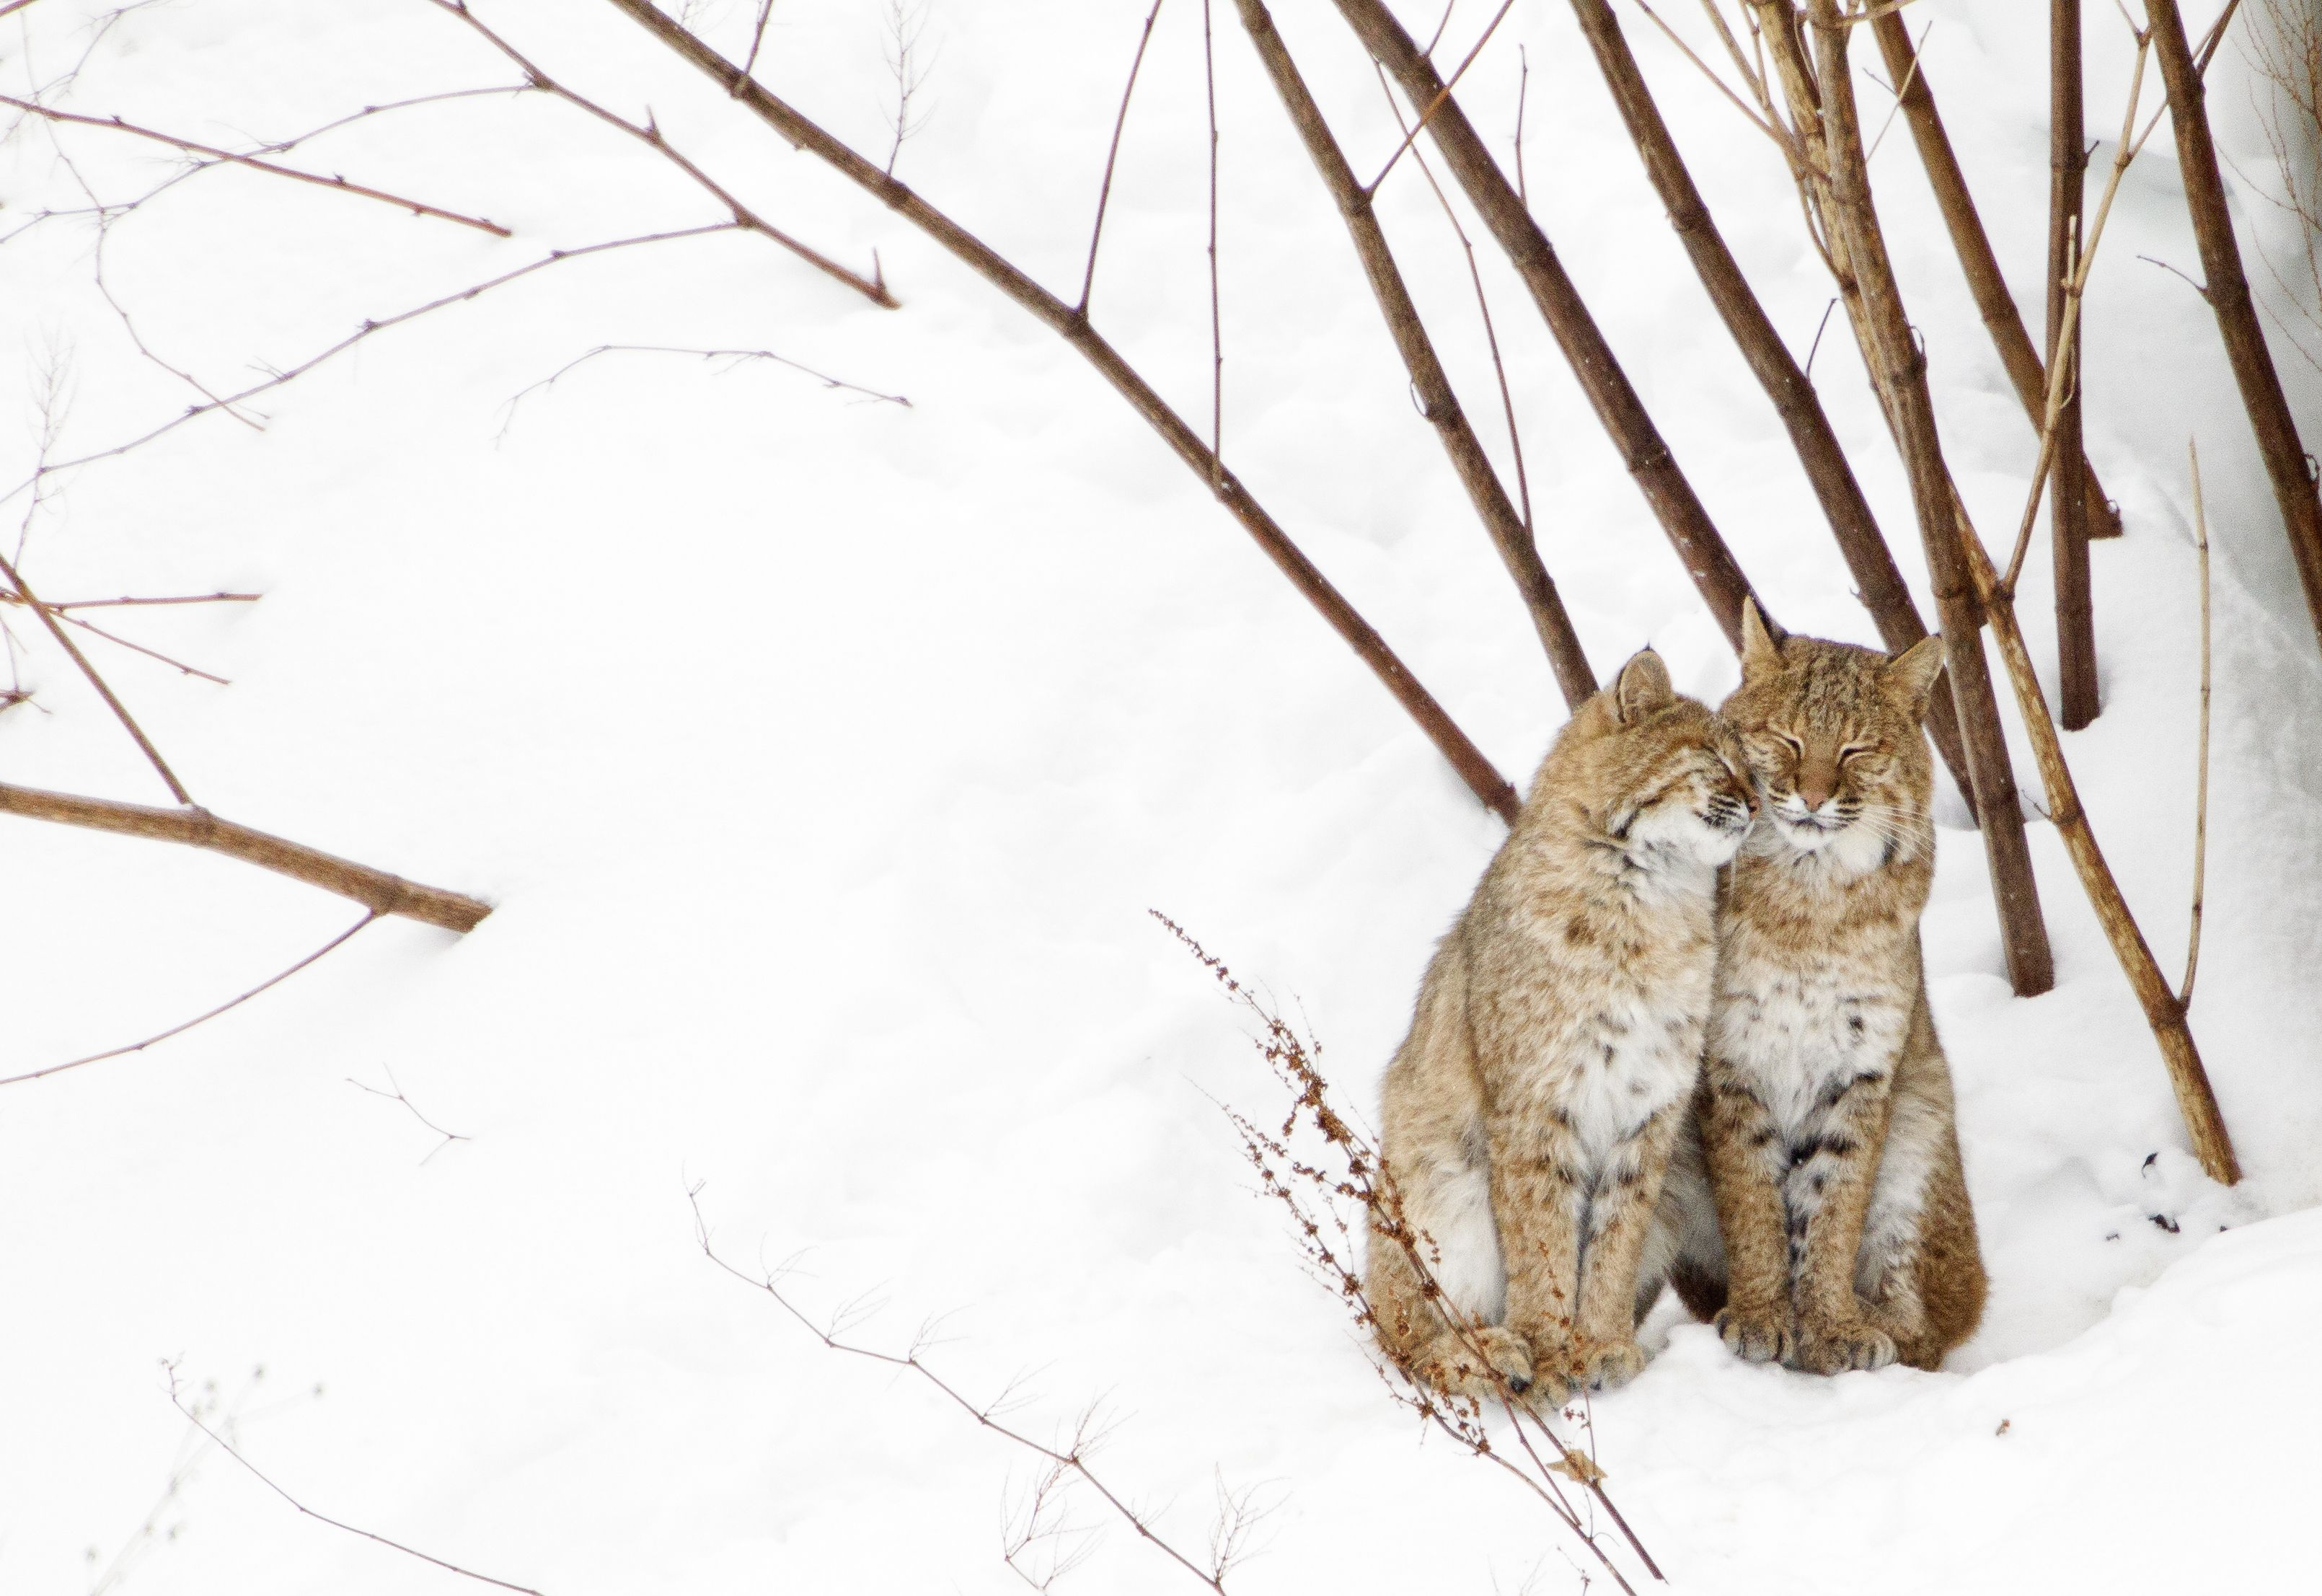 two bobcats nuzzling in snow